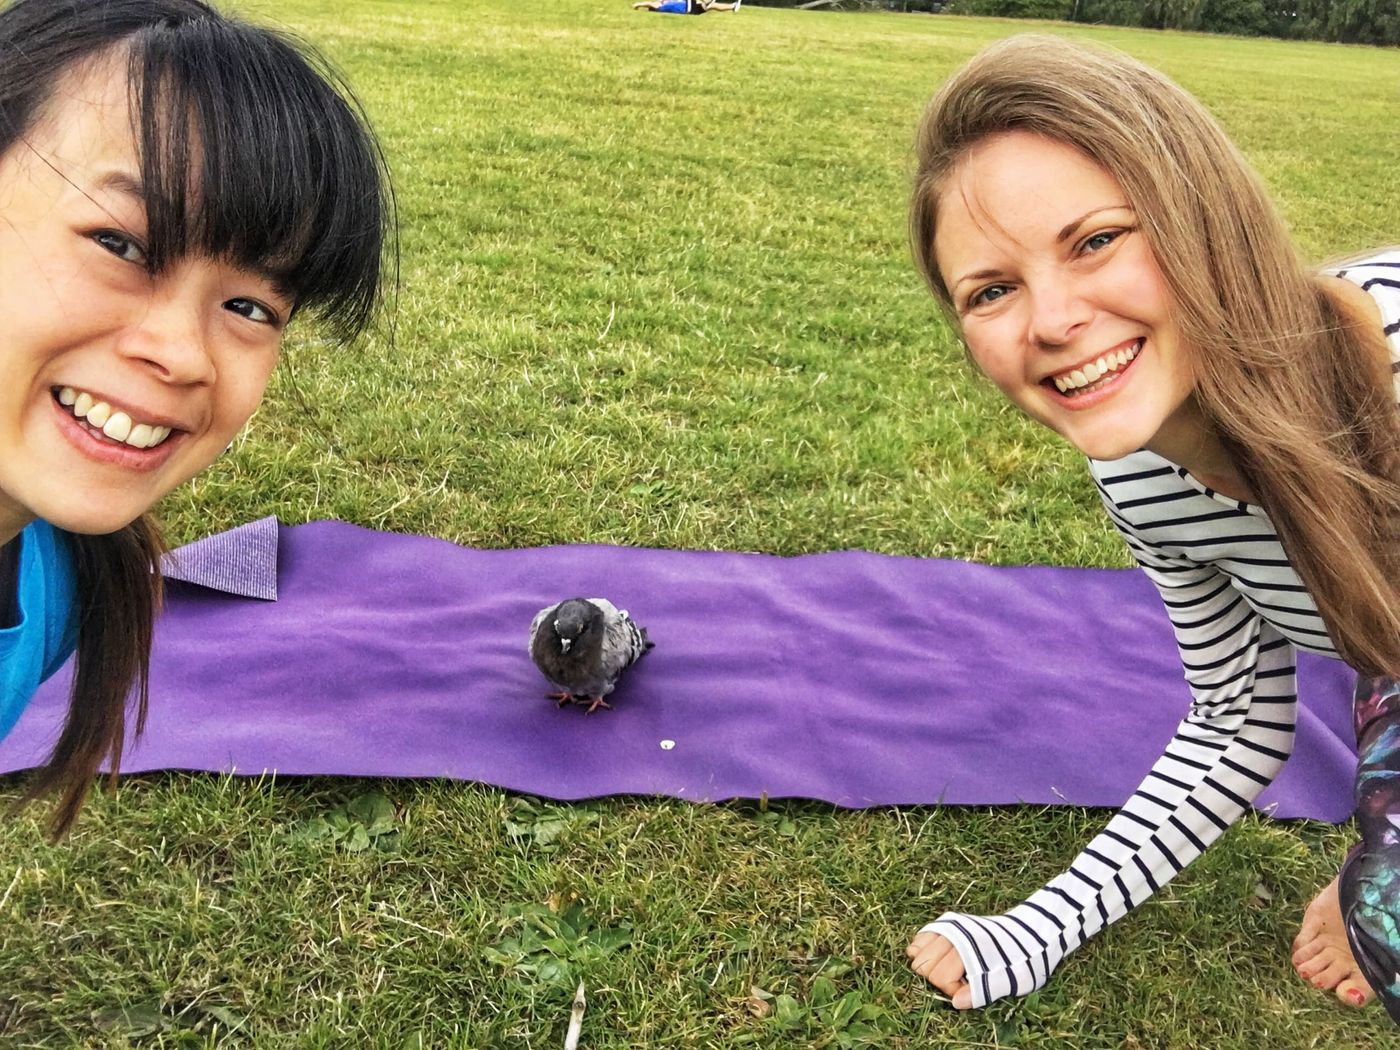 🌳 Vi in the Park 🌳 : Vinyasa Flow Yoga   Joined by our surprise guest - a little pigeon who who stayed till the end of the session!   Thank you Sarah for joining, so lovely to practice with you!